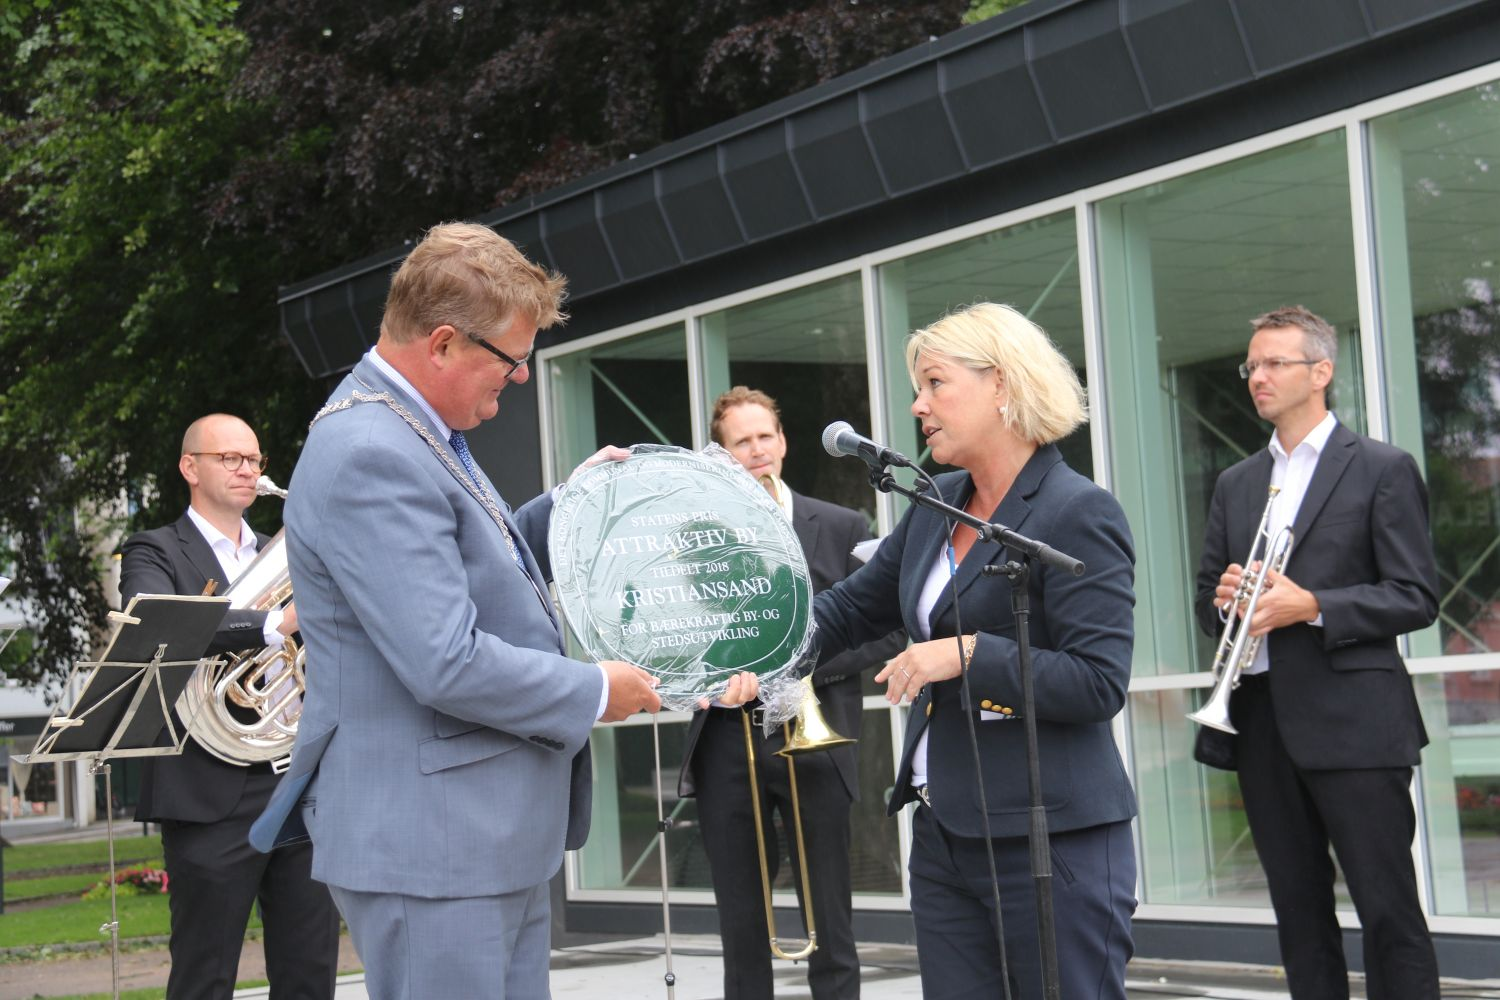 Monica Mæland, minister of Local Government and Modernisation, presented the award to Mayor of Kristiansand, Harald Furre. In the background, musicians from Kristiansand Symphony Orchestra (KSO)